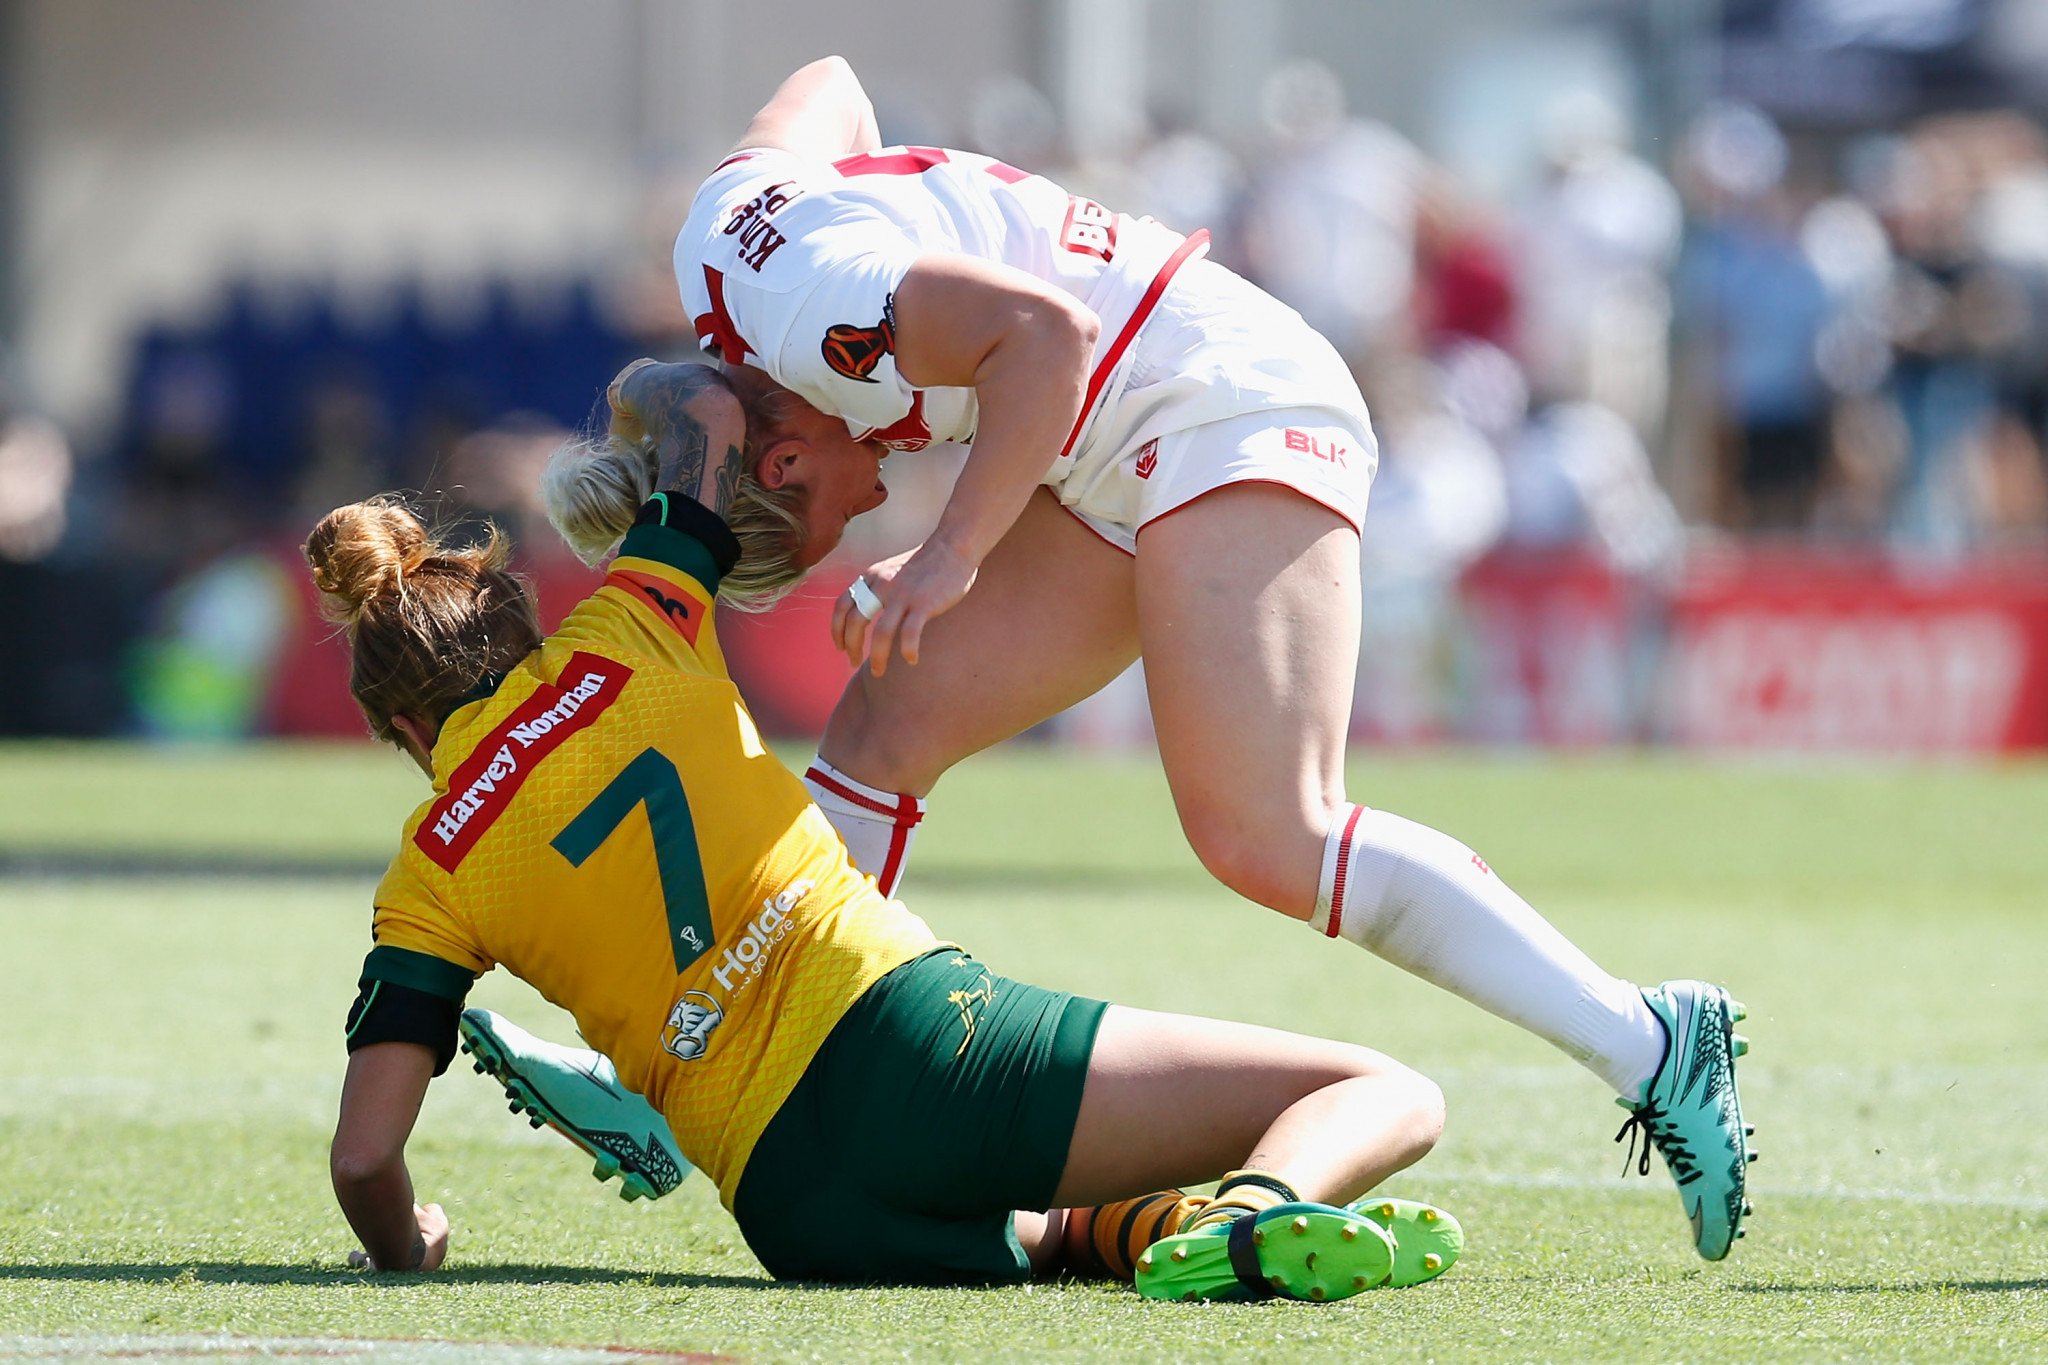 Charlotte Booth of England is tackled by Caitlin Moran of Australia during the 2017 Women's Rugby League World Cup match between Australia and England at Southern Cross Group Stadium ©Getty Images